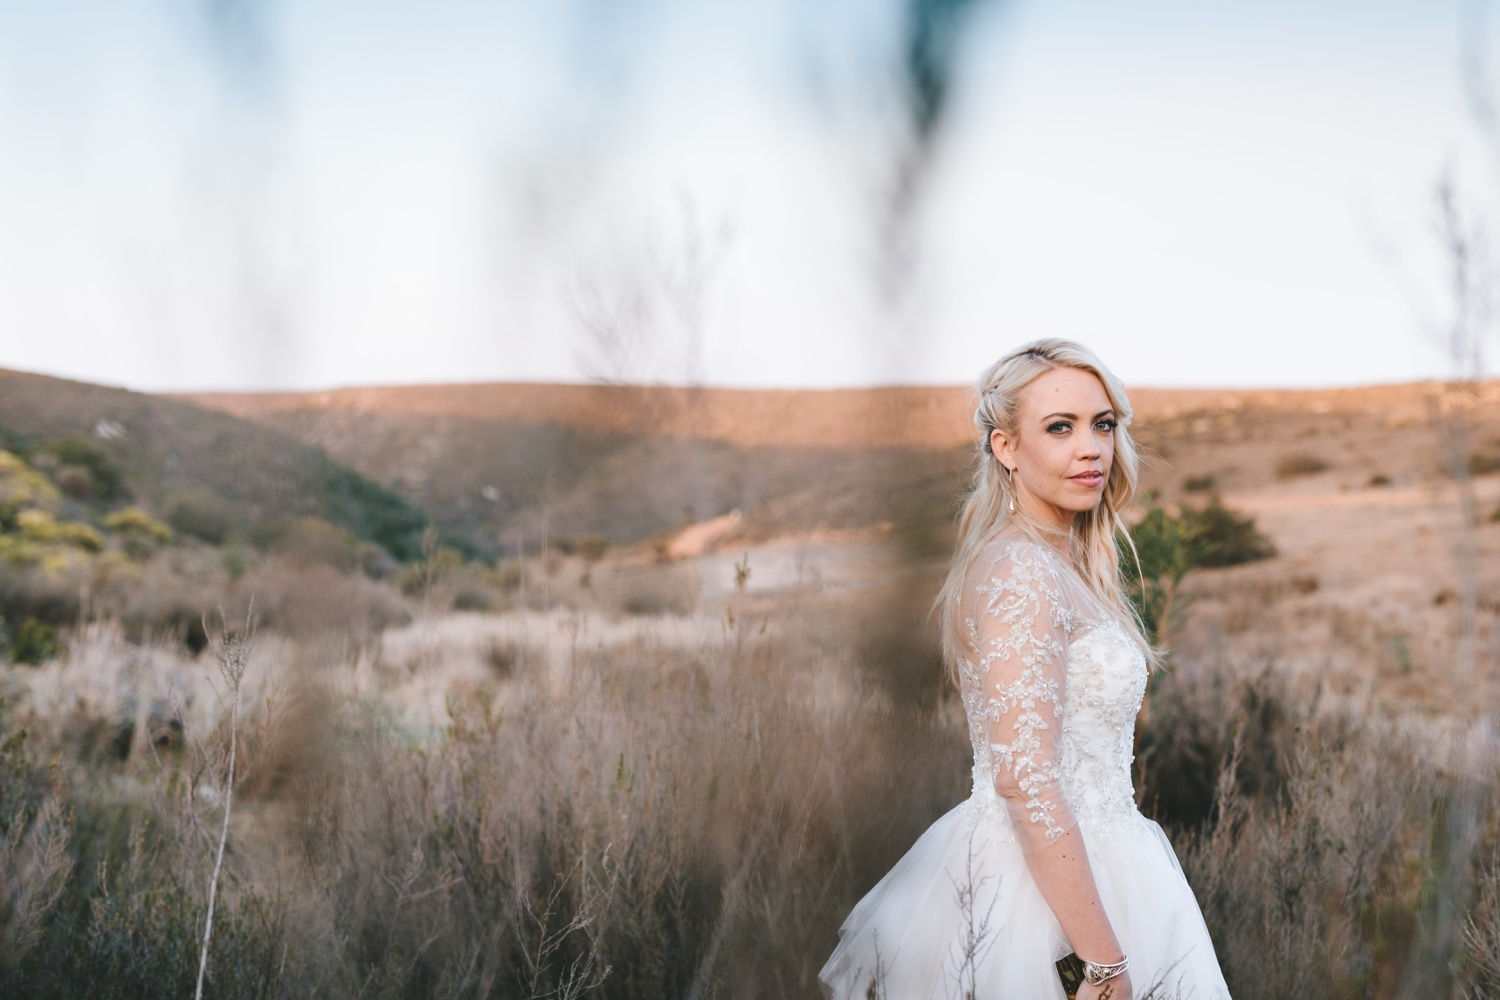 cathryn_warwick_wearecharlieray_hopewell_conservation_eastern_cape_wedding_0110.jpg